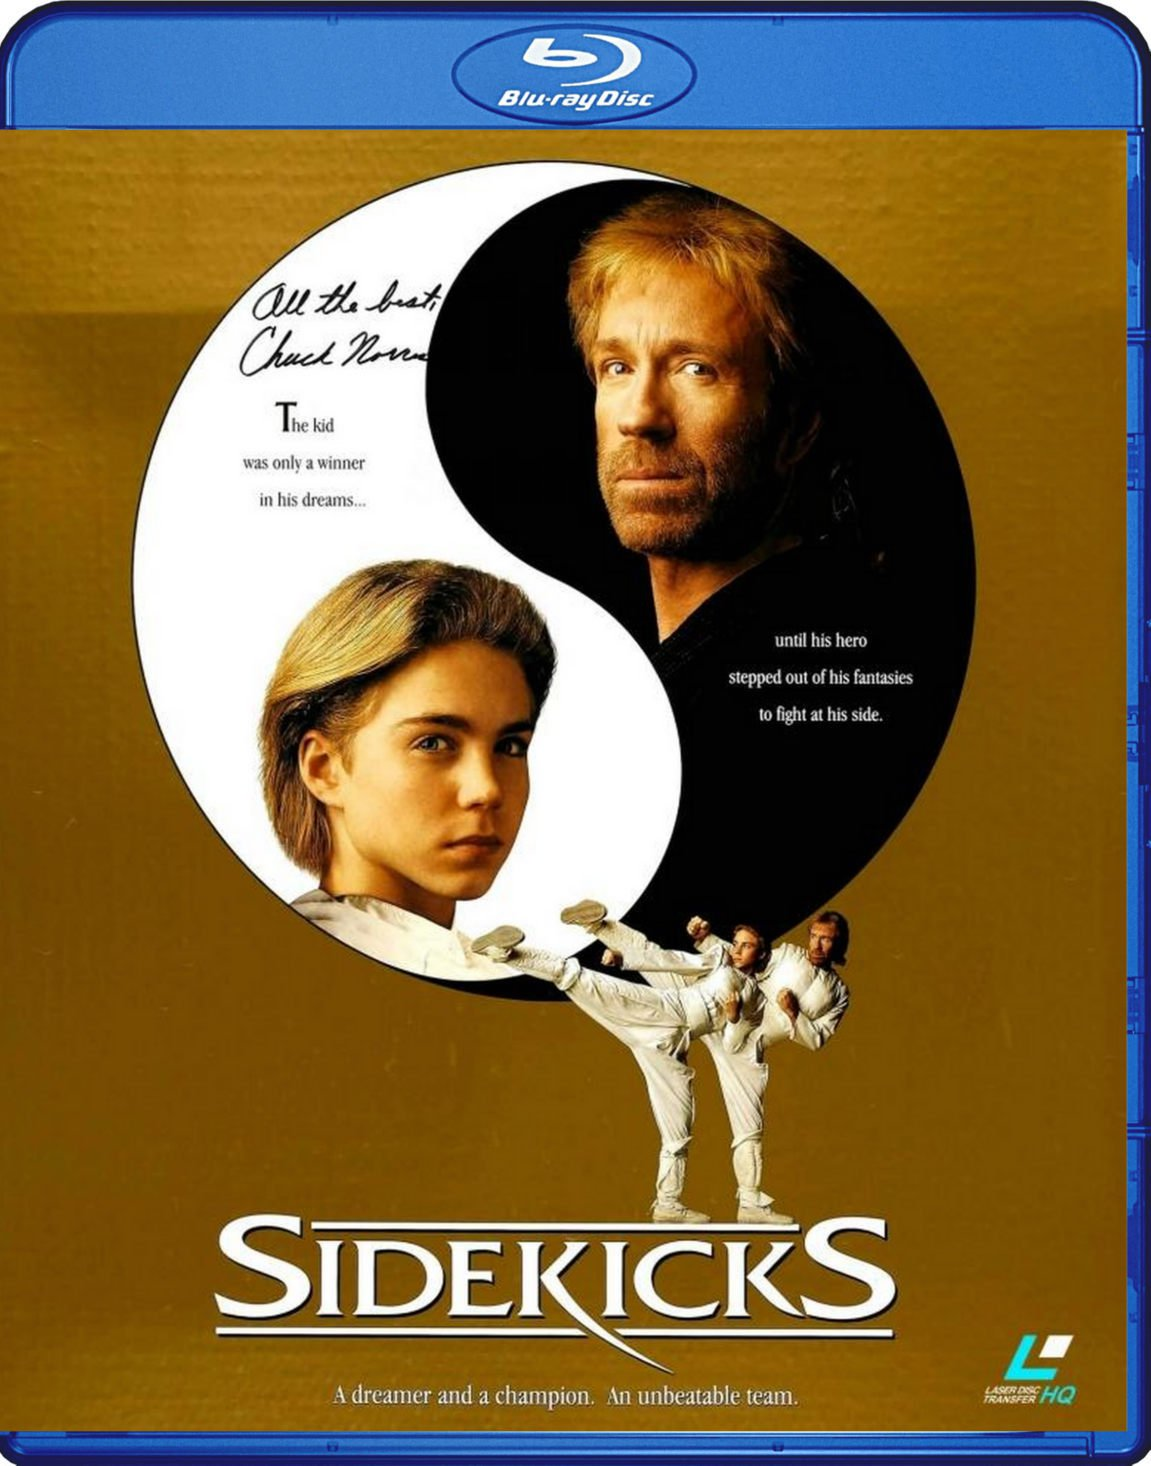 Sidekicks Blu-Ray (1992) Transferred from Lazerdisc to Blu-Ray